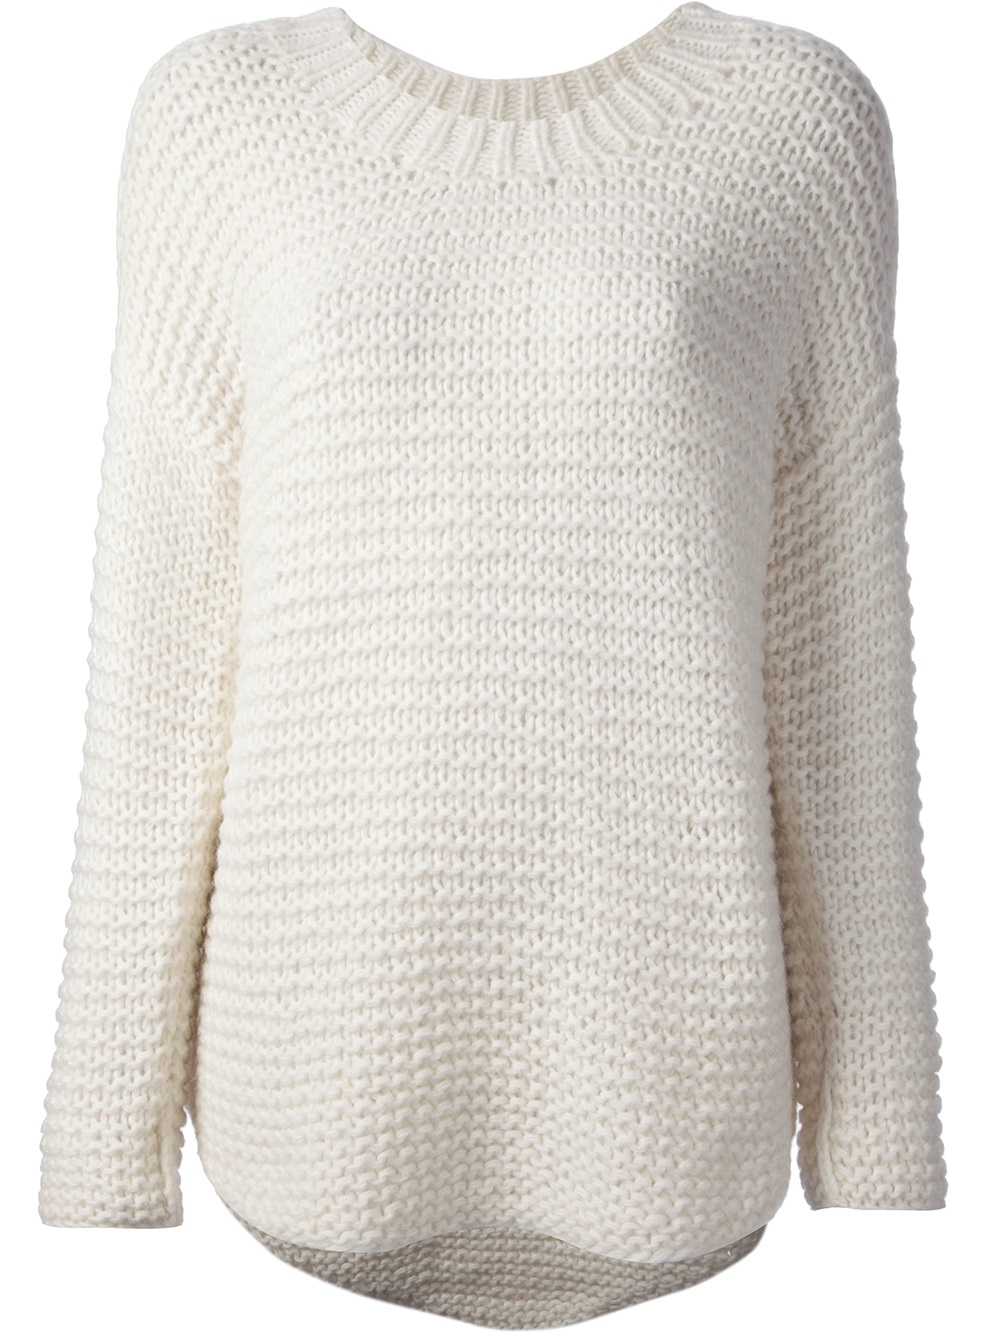 Paul & joe Rinaldi Chunky Knit Sweater in White | Lyst